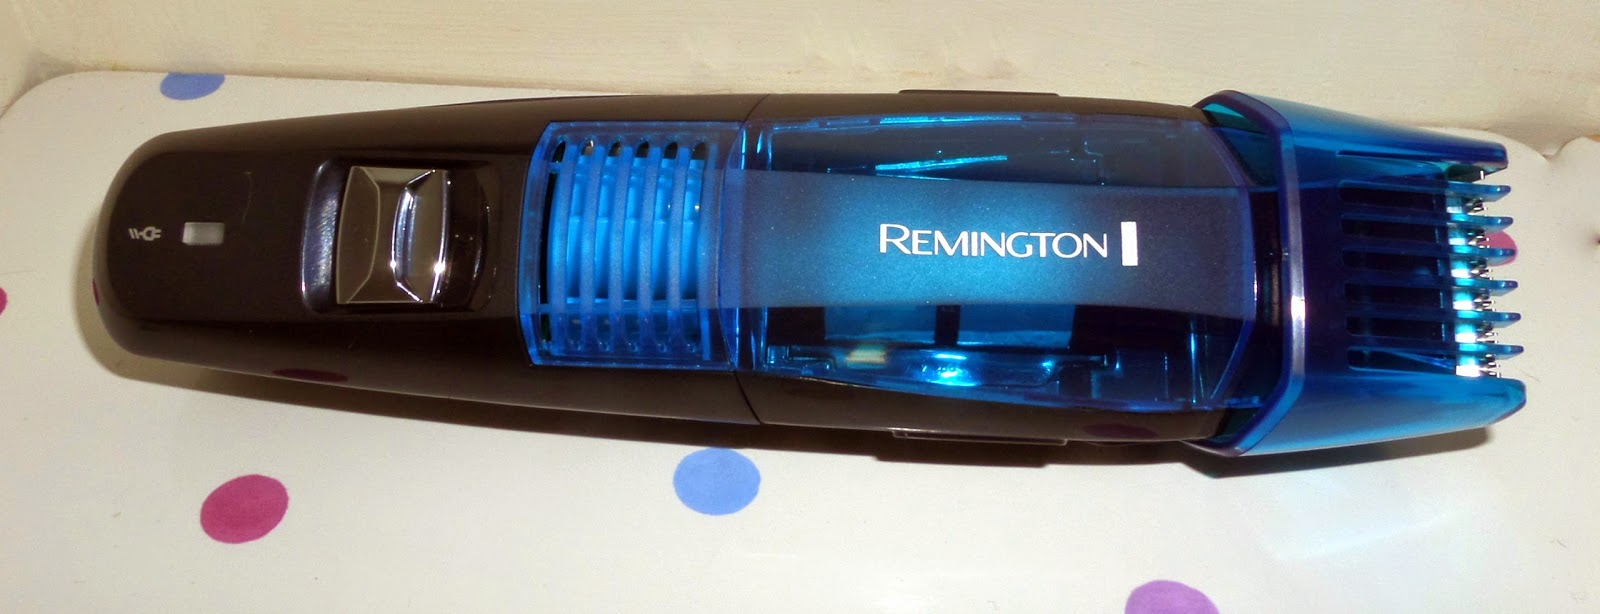 review and giveaway remington vacuum beard and grooming kit for father 39 s. Black Bedroom Furniture Sets. Home Design Ideas